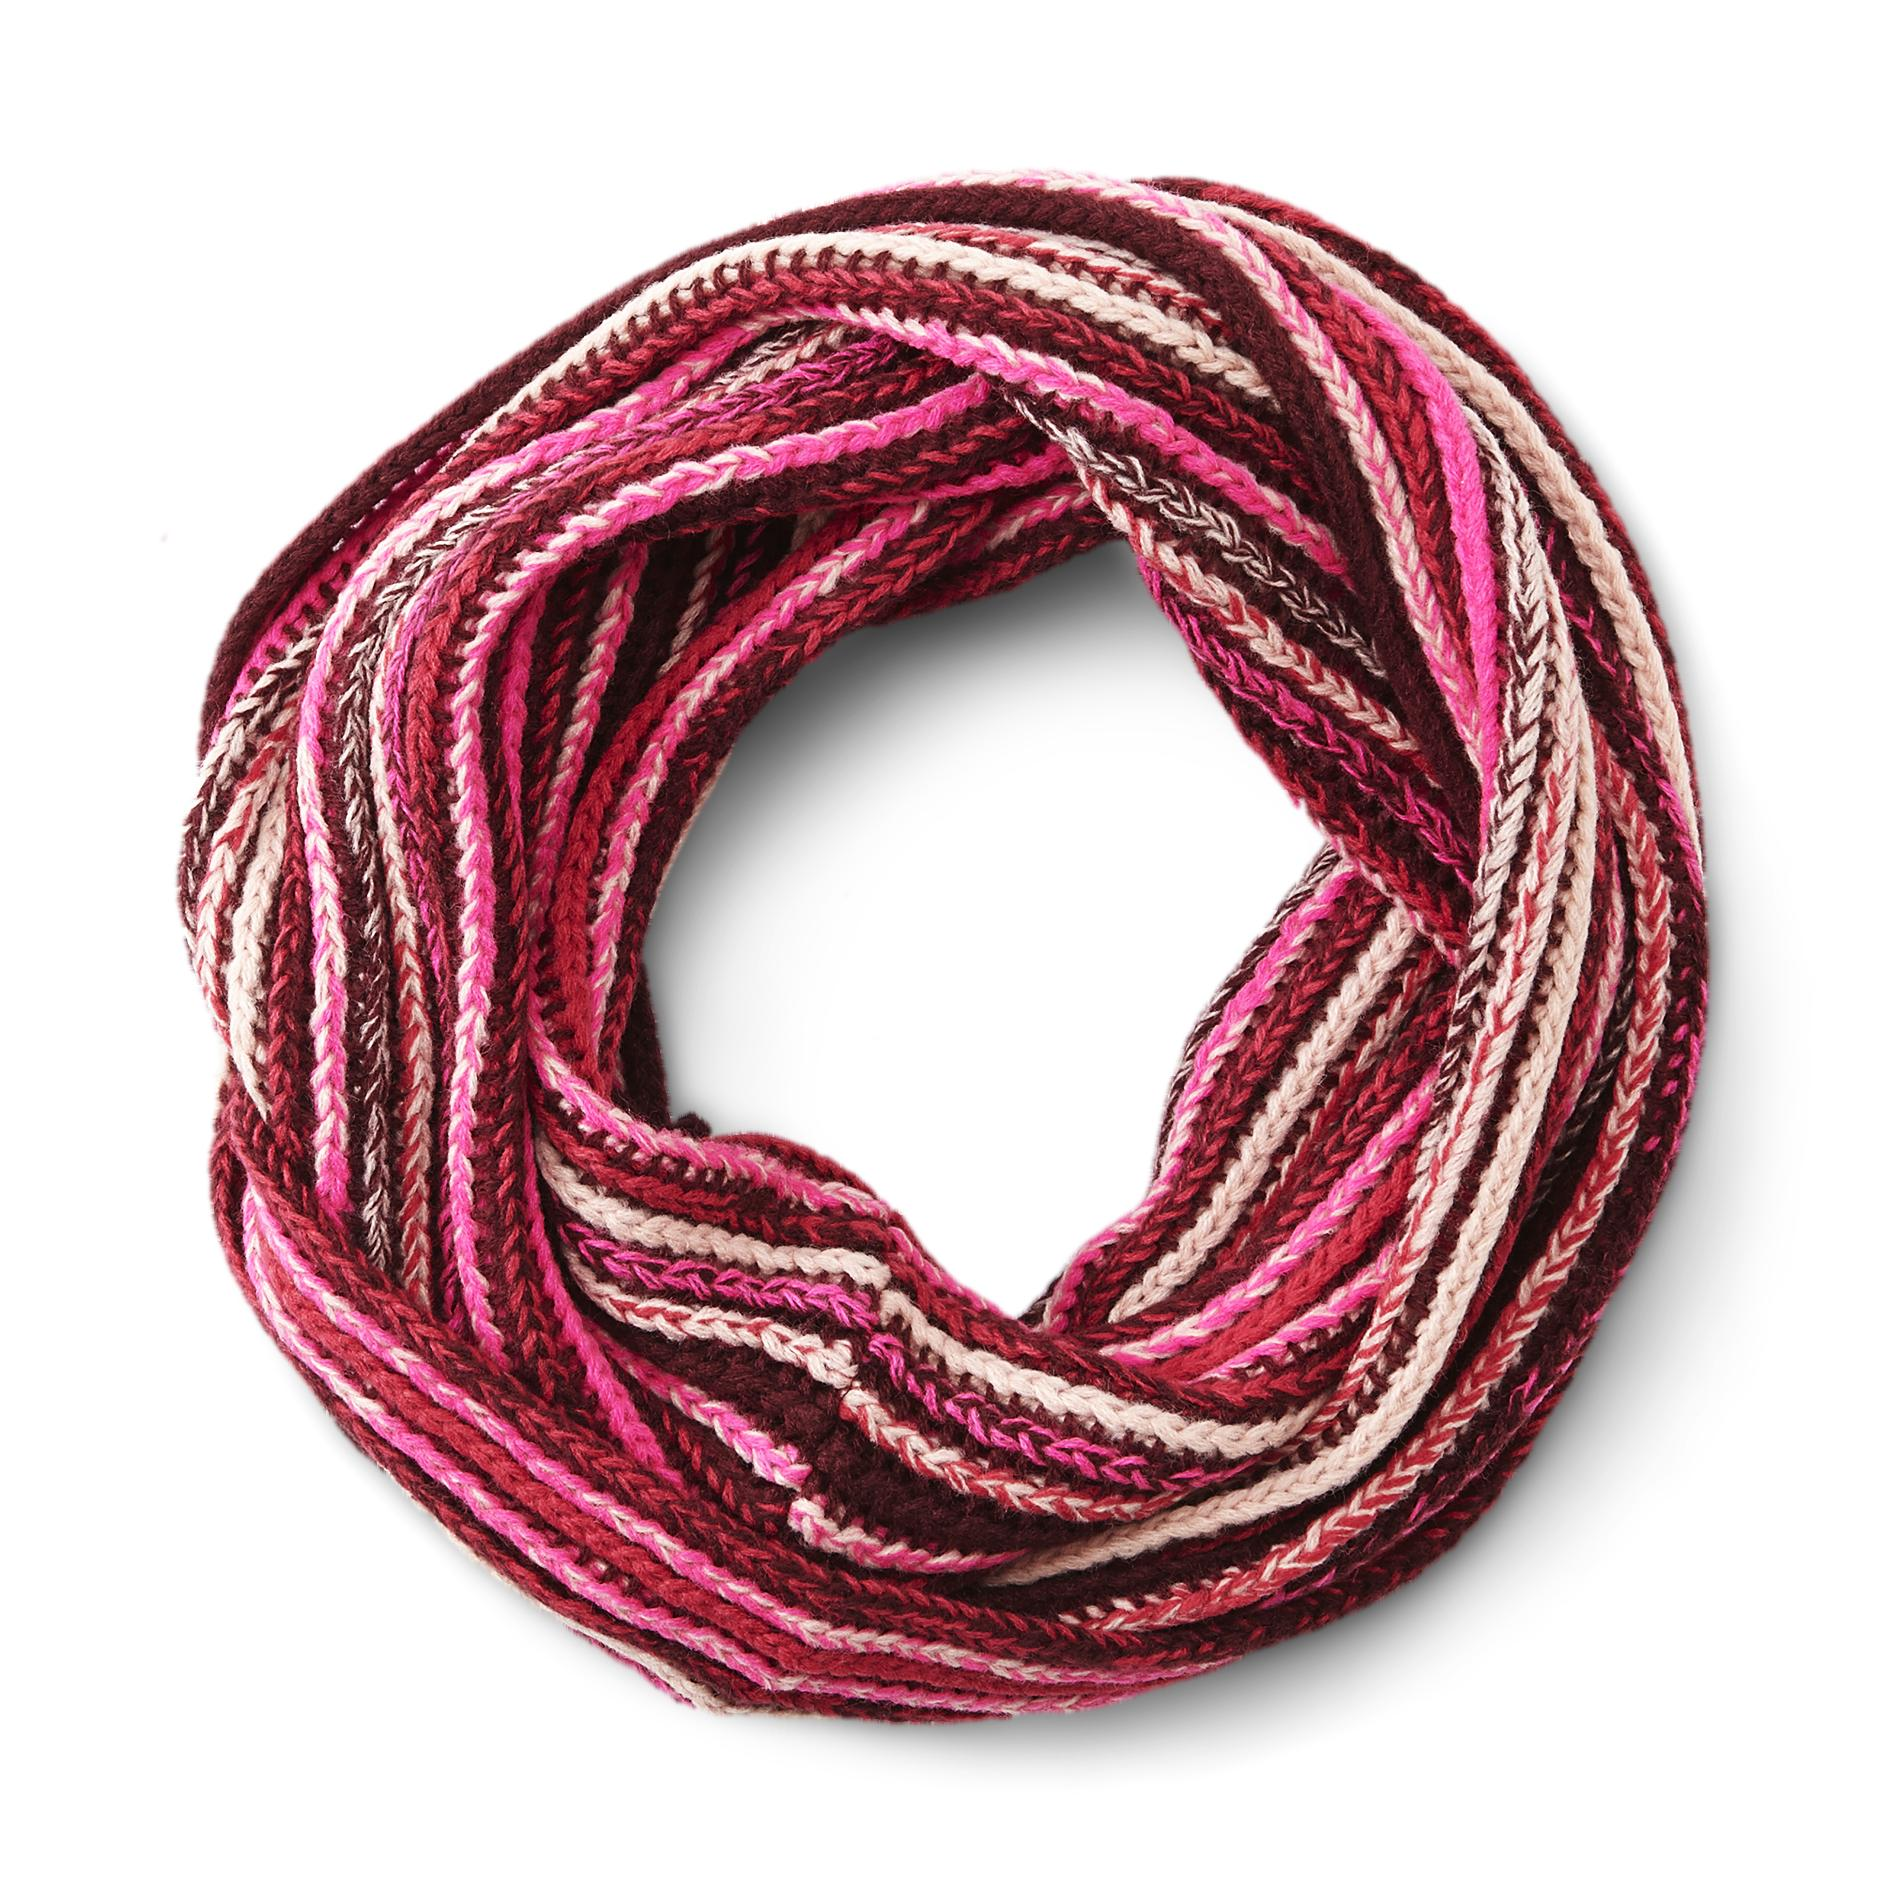 Women's Knit Infinity Scarf - Multicolored